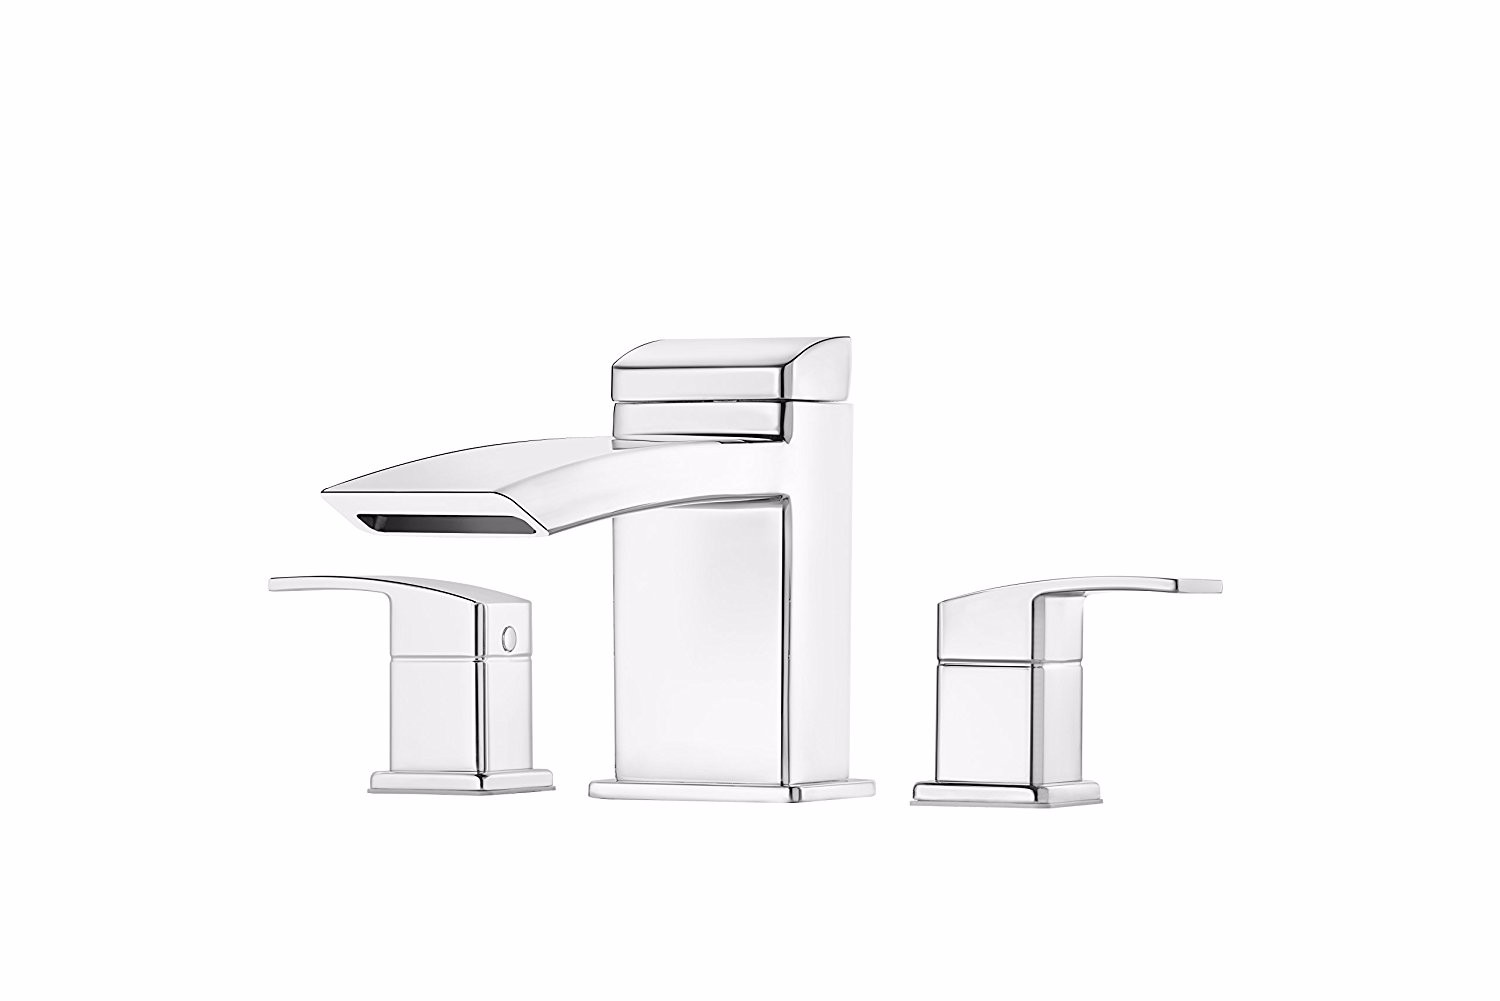 Pfister RT65D1C Kenzo Tub Faucet Trim Kit Polished Chrome by Pfister